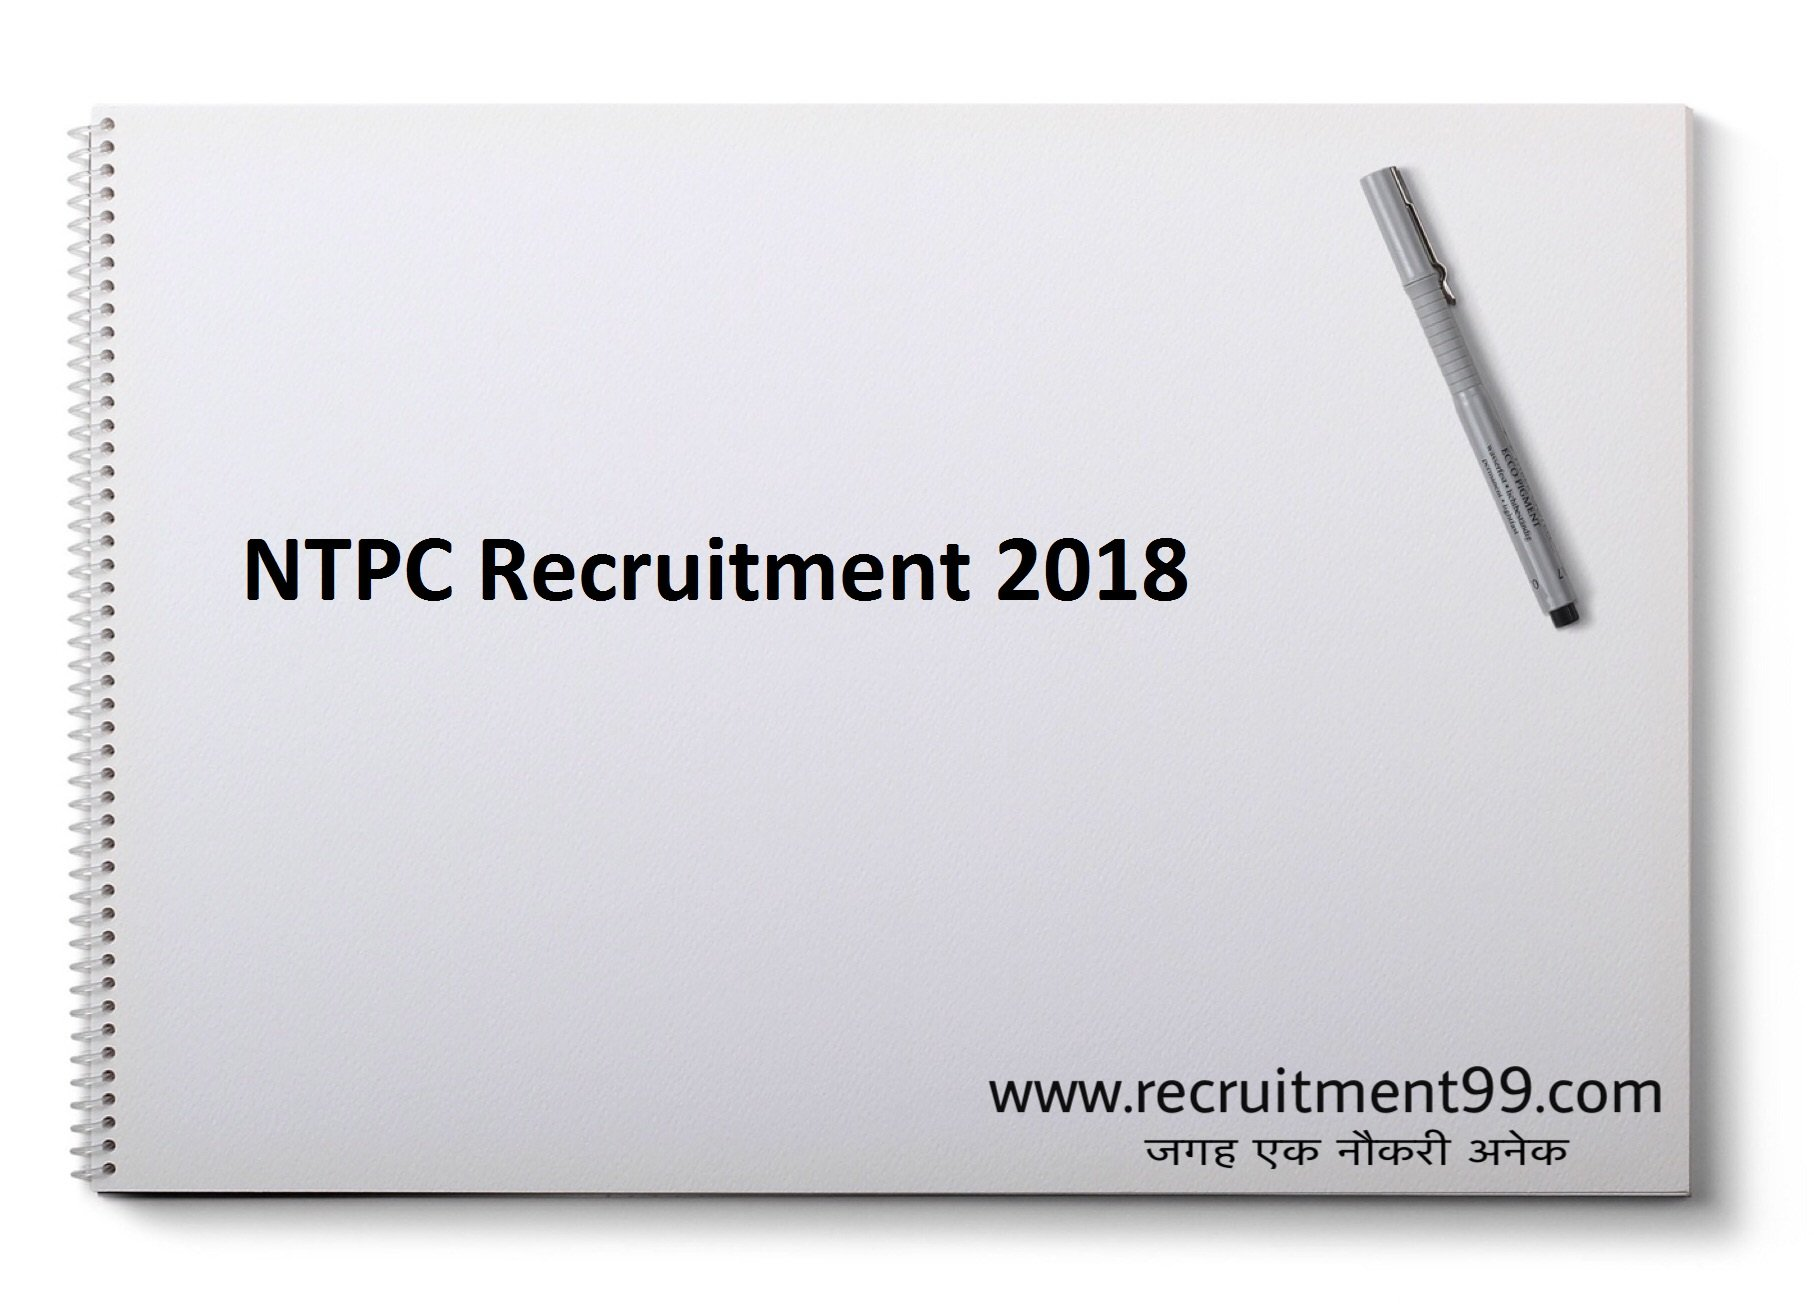 NTPC Executive Trainee ACT Associate Recruitment Admit Card & Result 2018